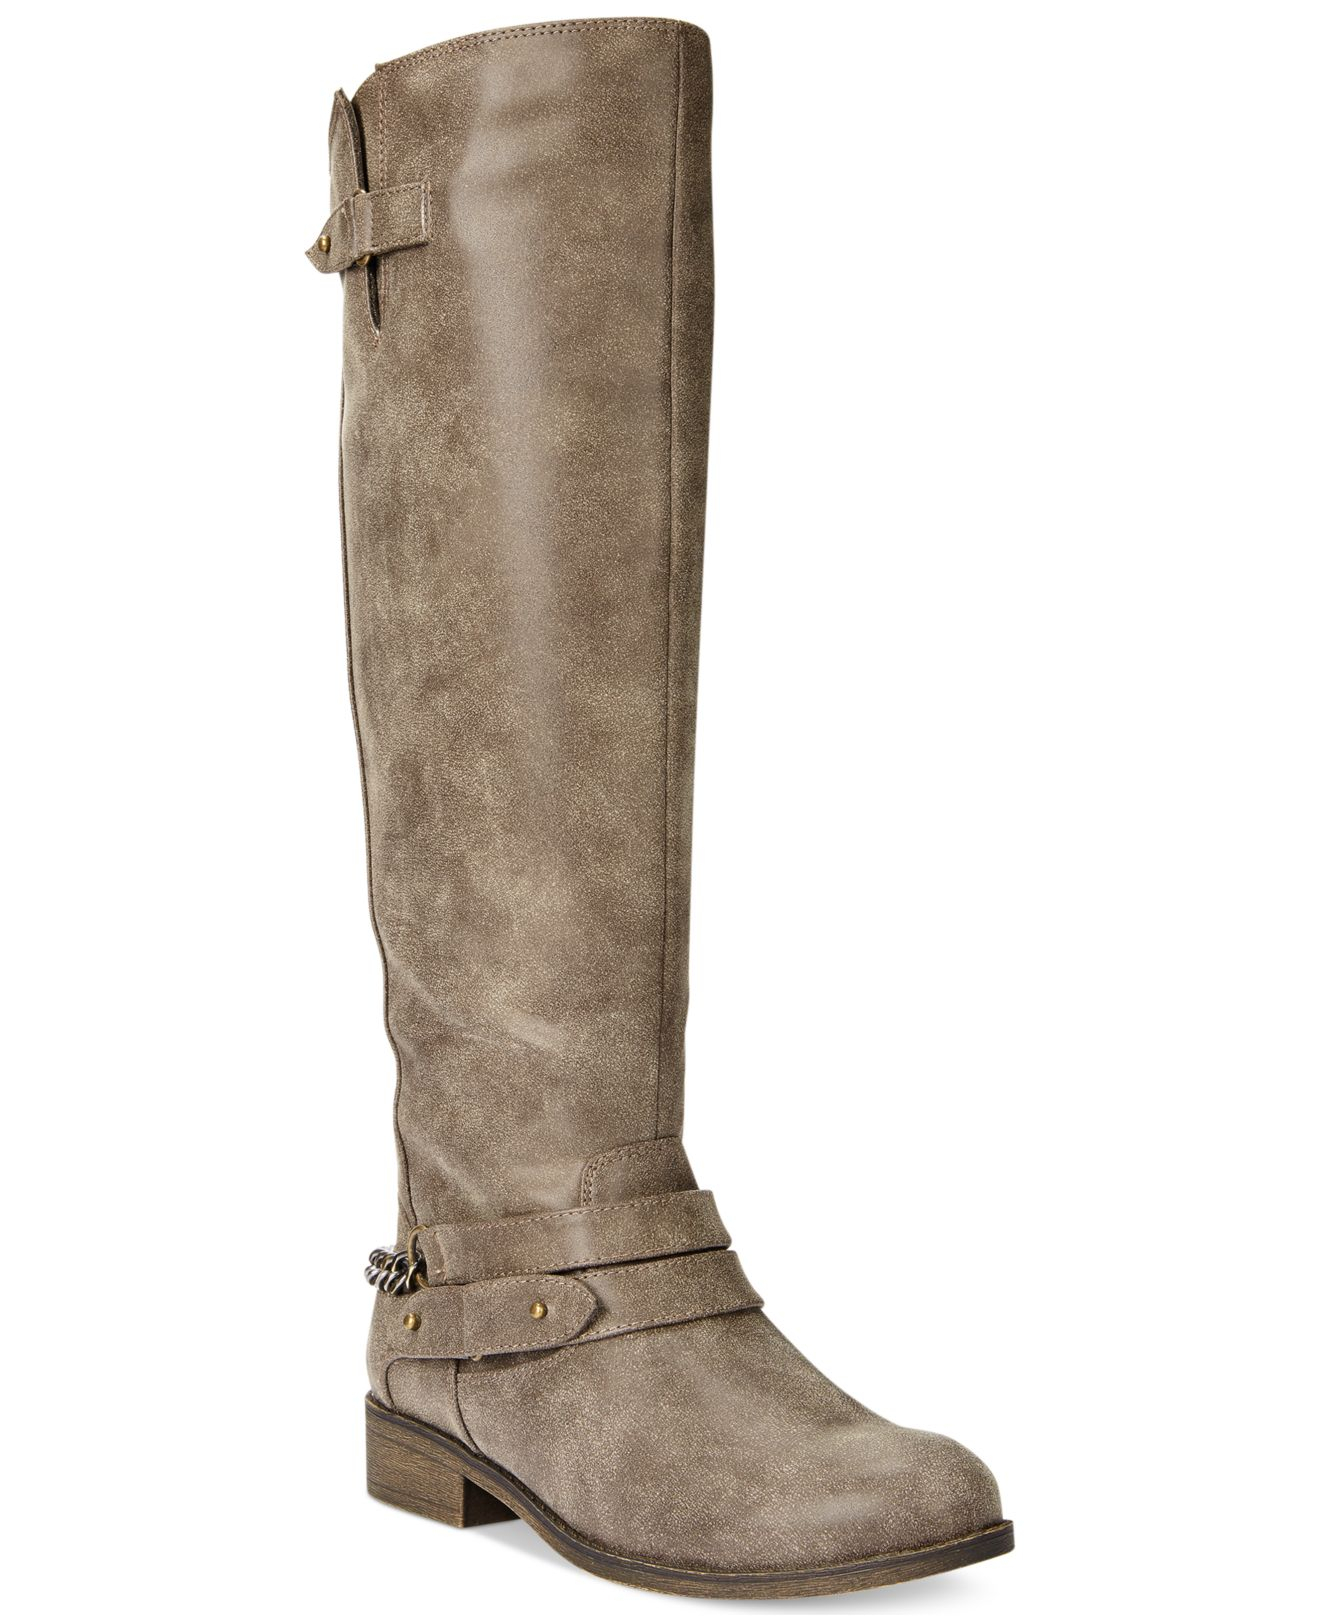 Shop for wide calf boots at askreservations.ml Basic and fashion styles always available online at askreservations.ml Free shipping available!